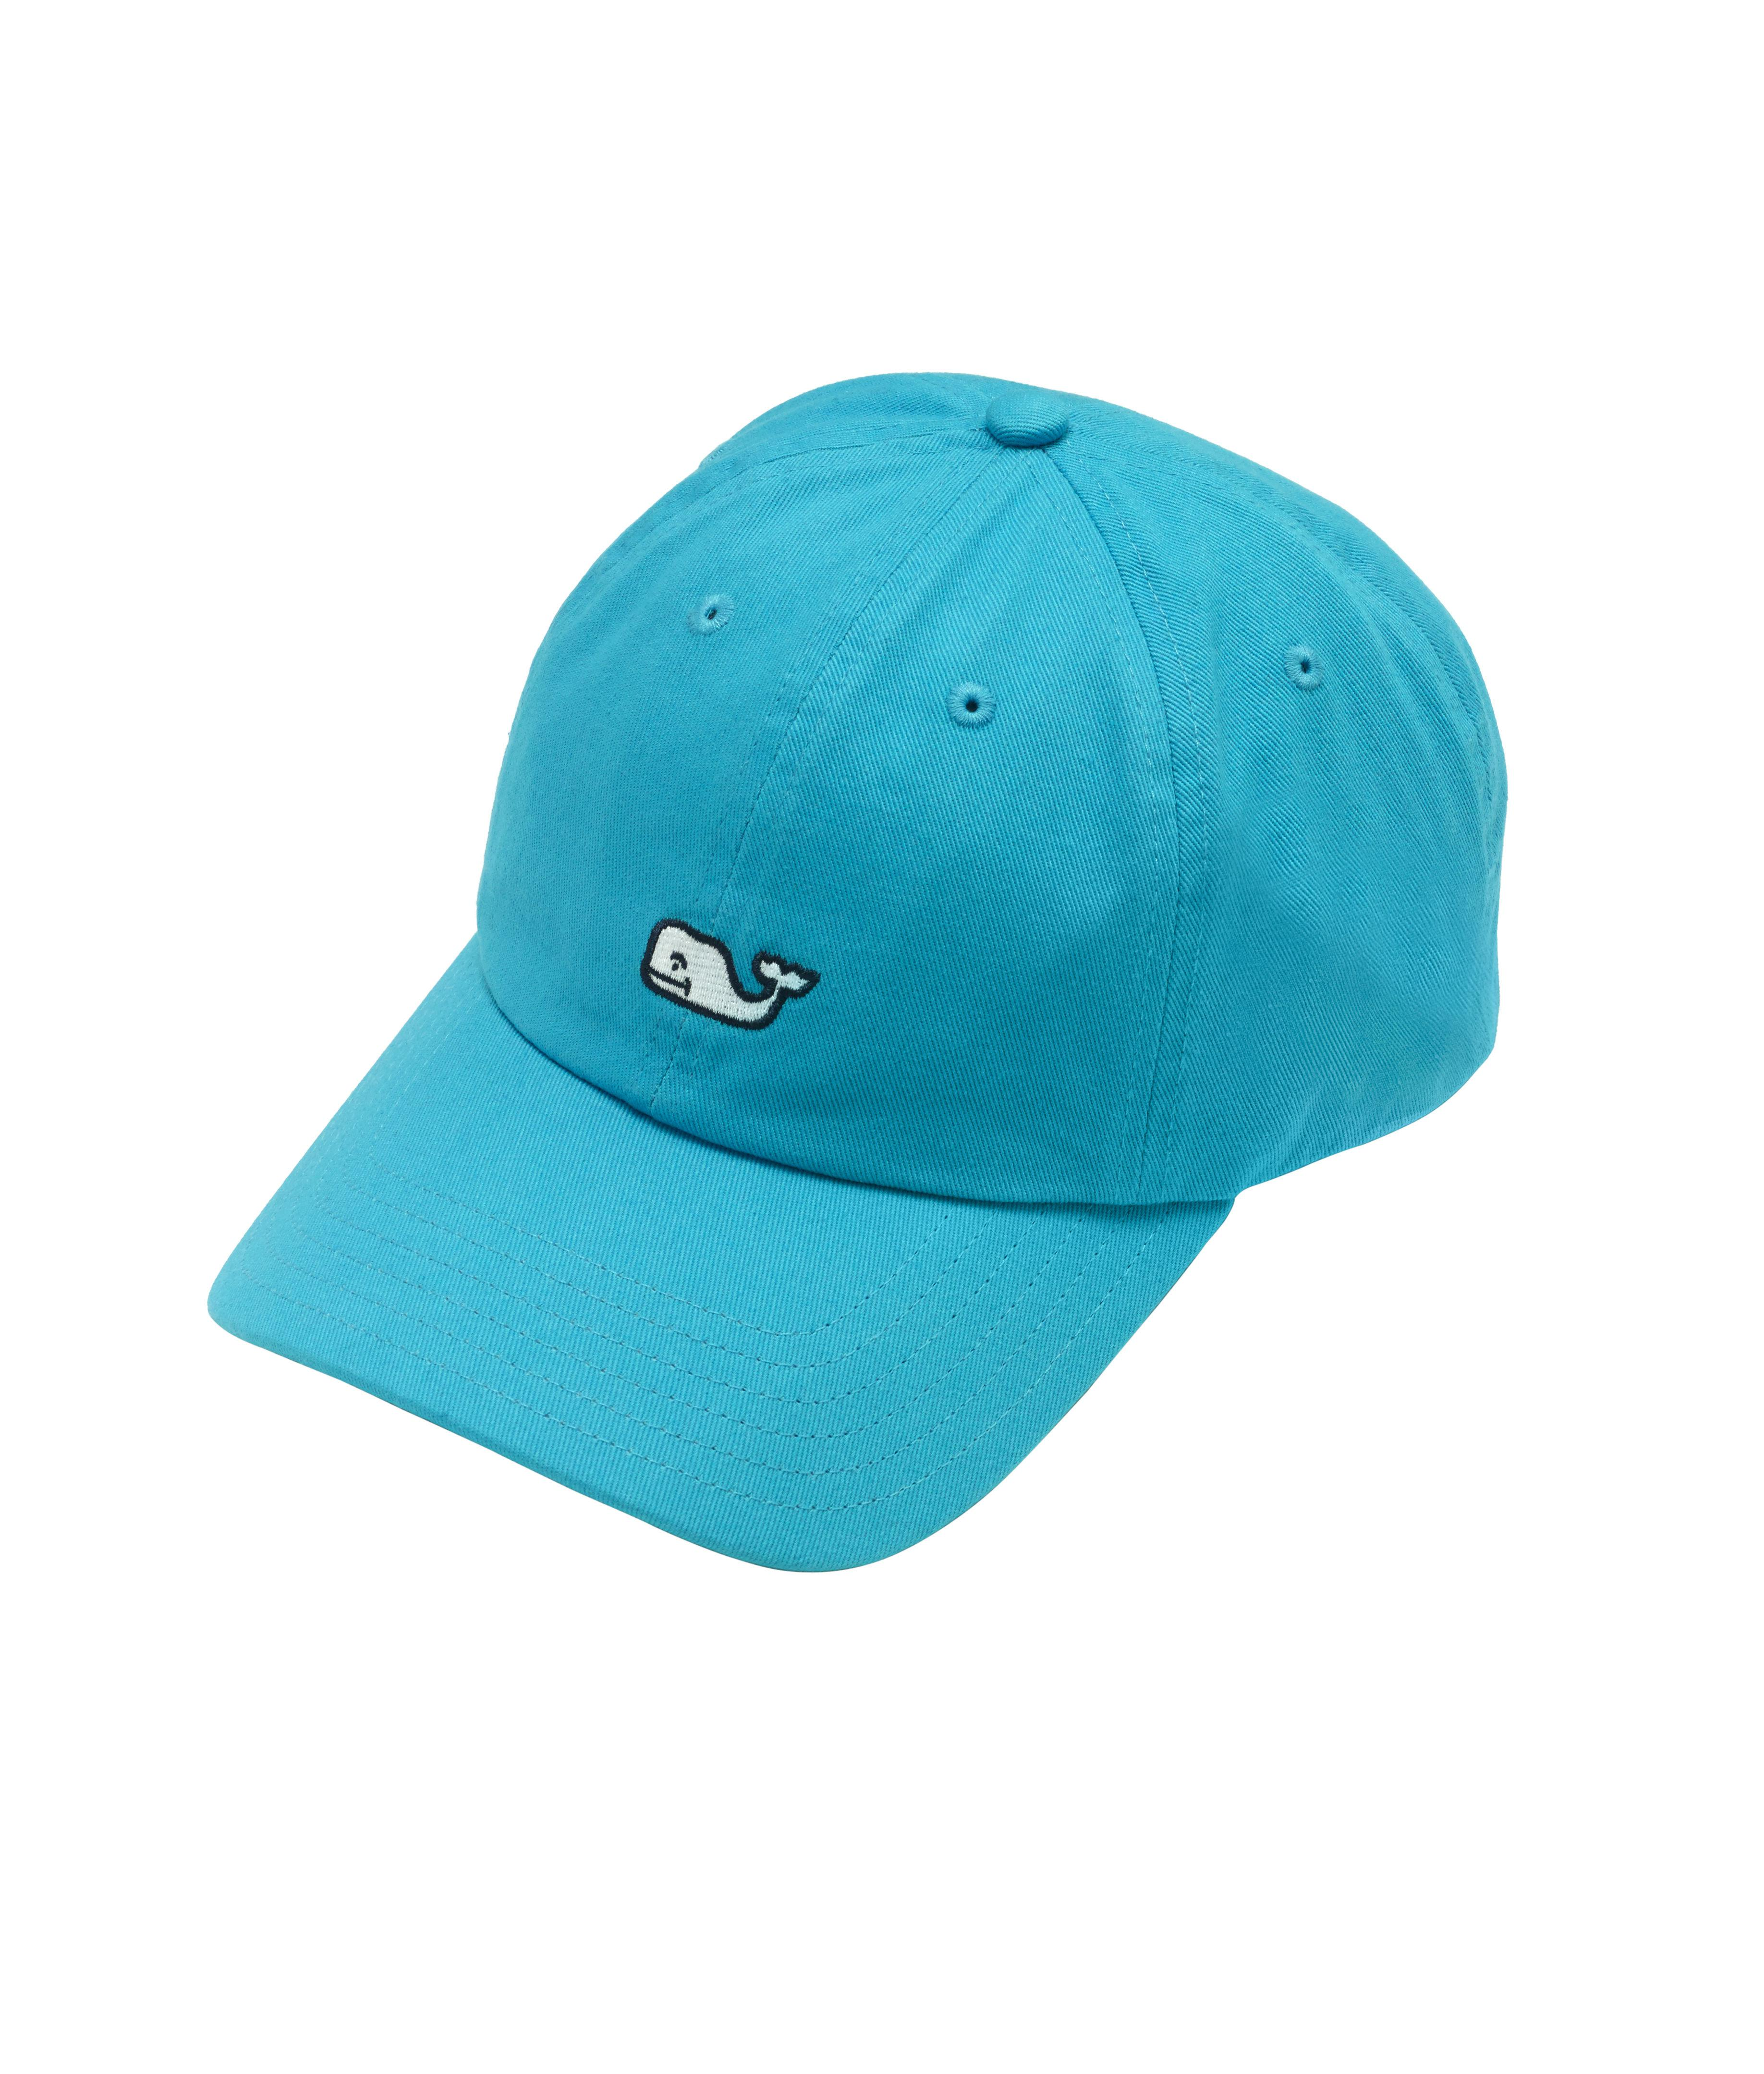 b391b8f9 Lyst - Vineyard Vines Whale Logo Baseball Hat in Blue for Men